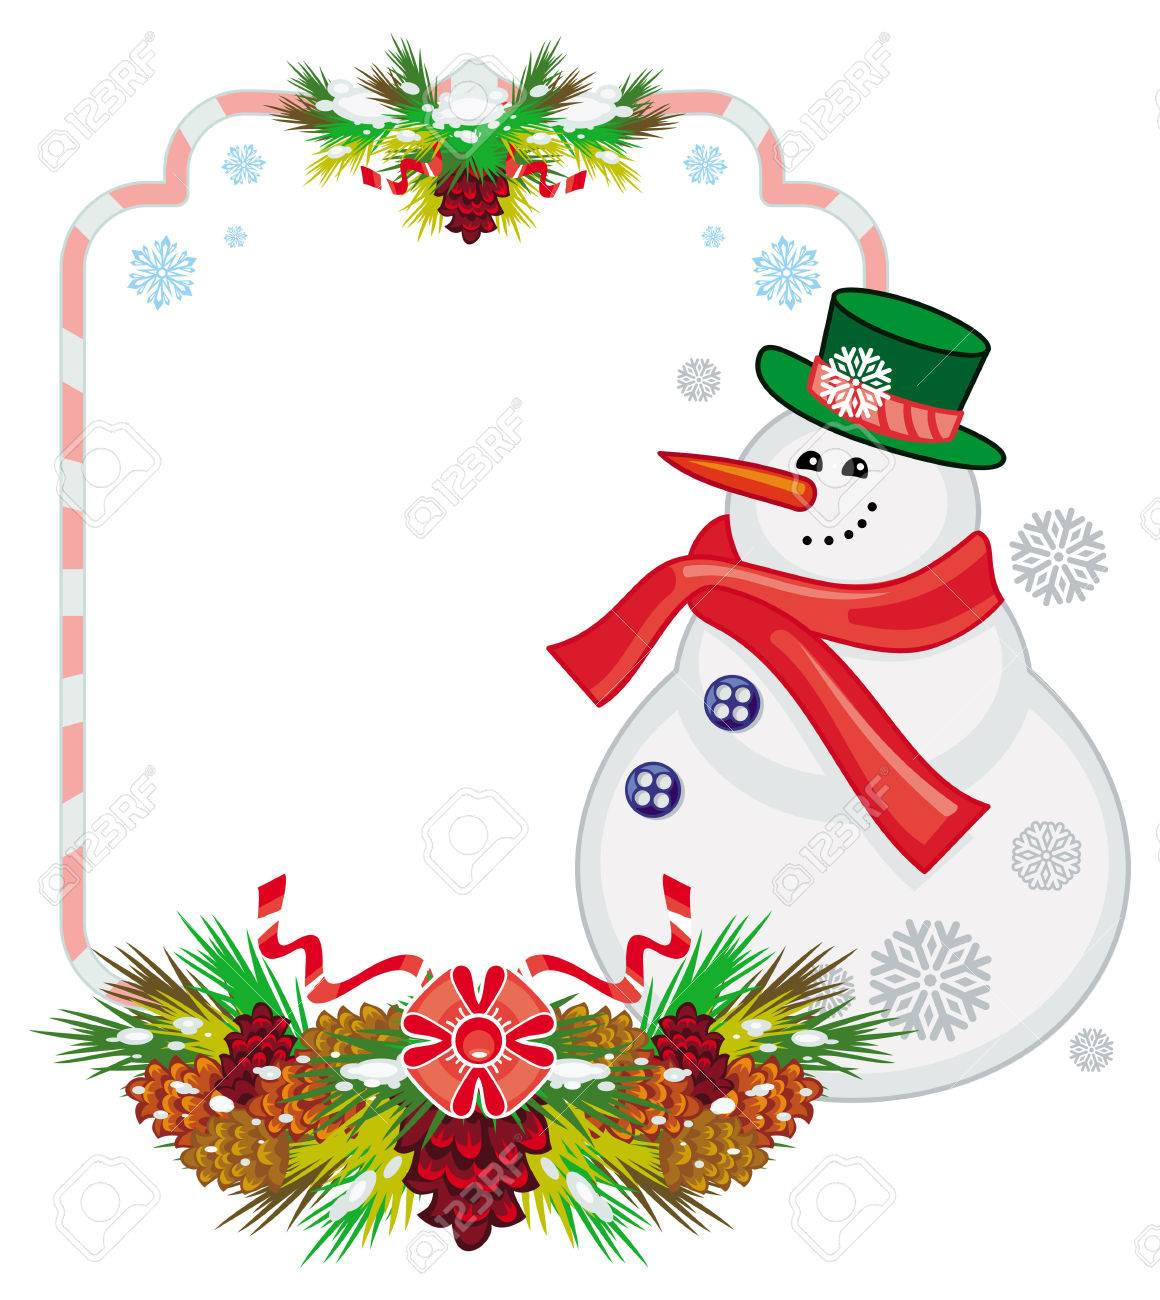 holiday frame with snowman pine branches and cones christmas rh 123rf com